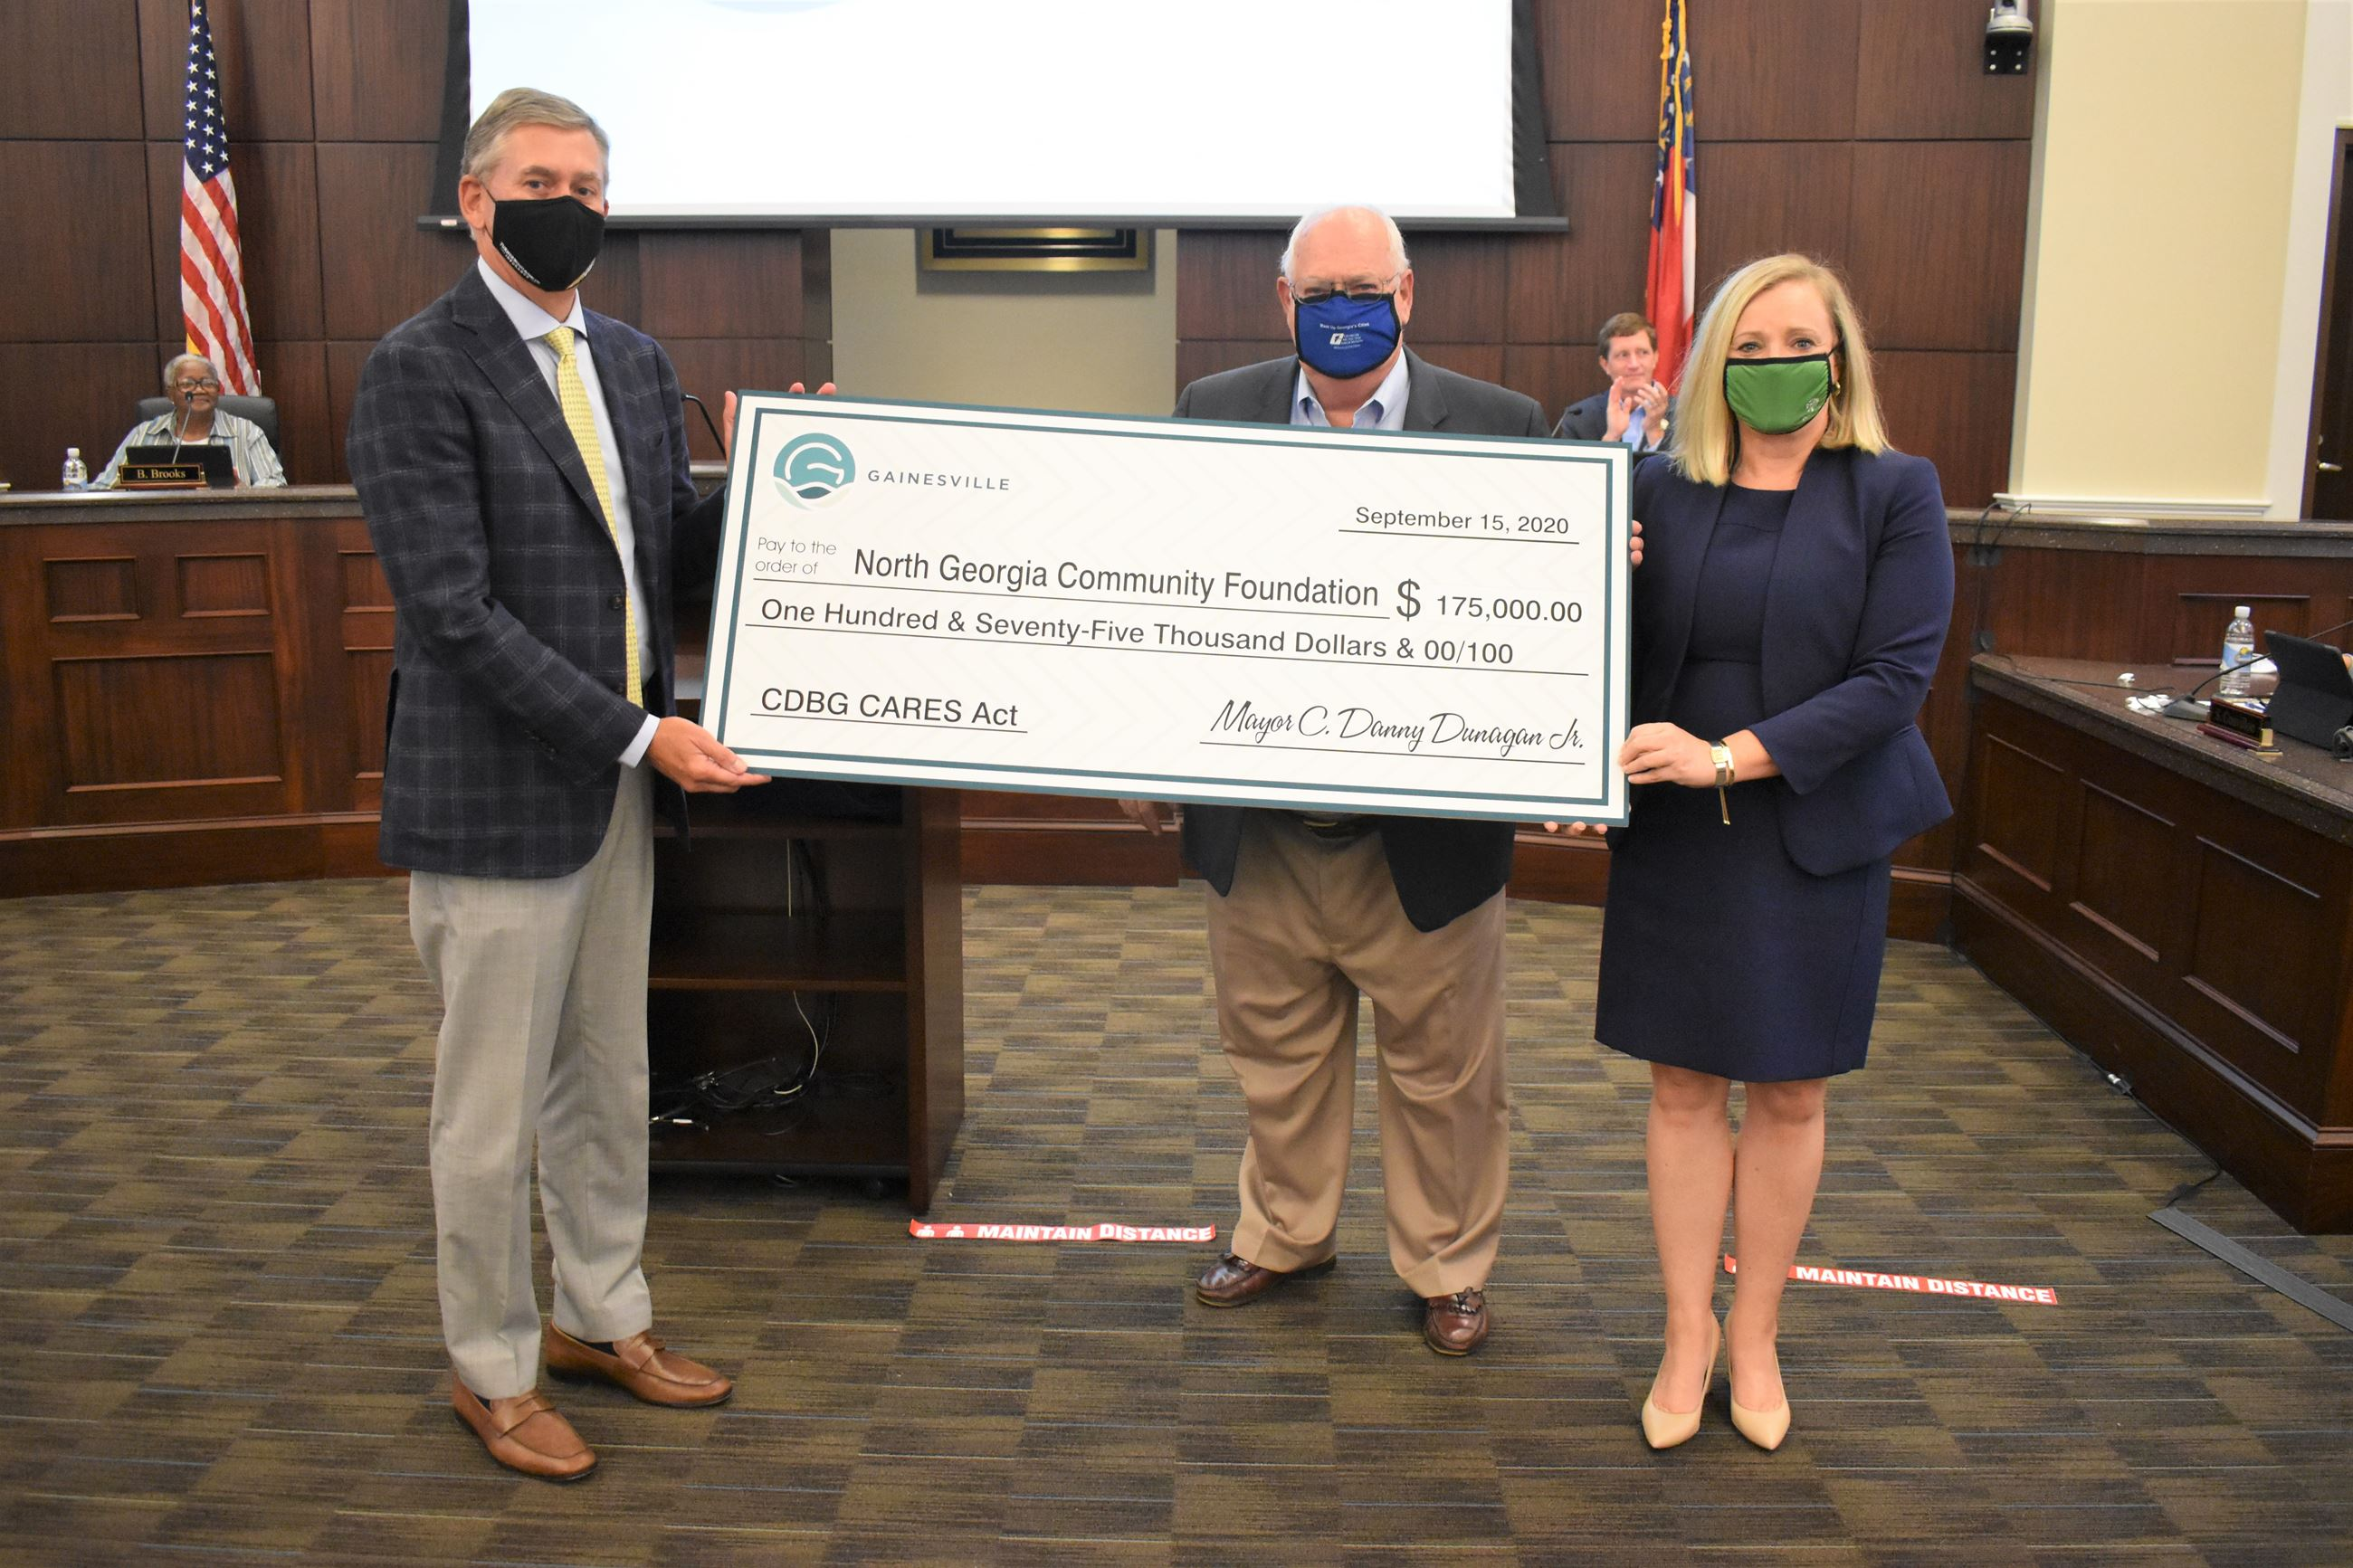 City of Gainesville + NGCF check presentation